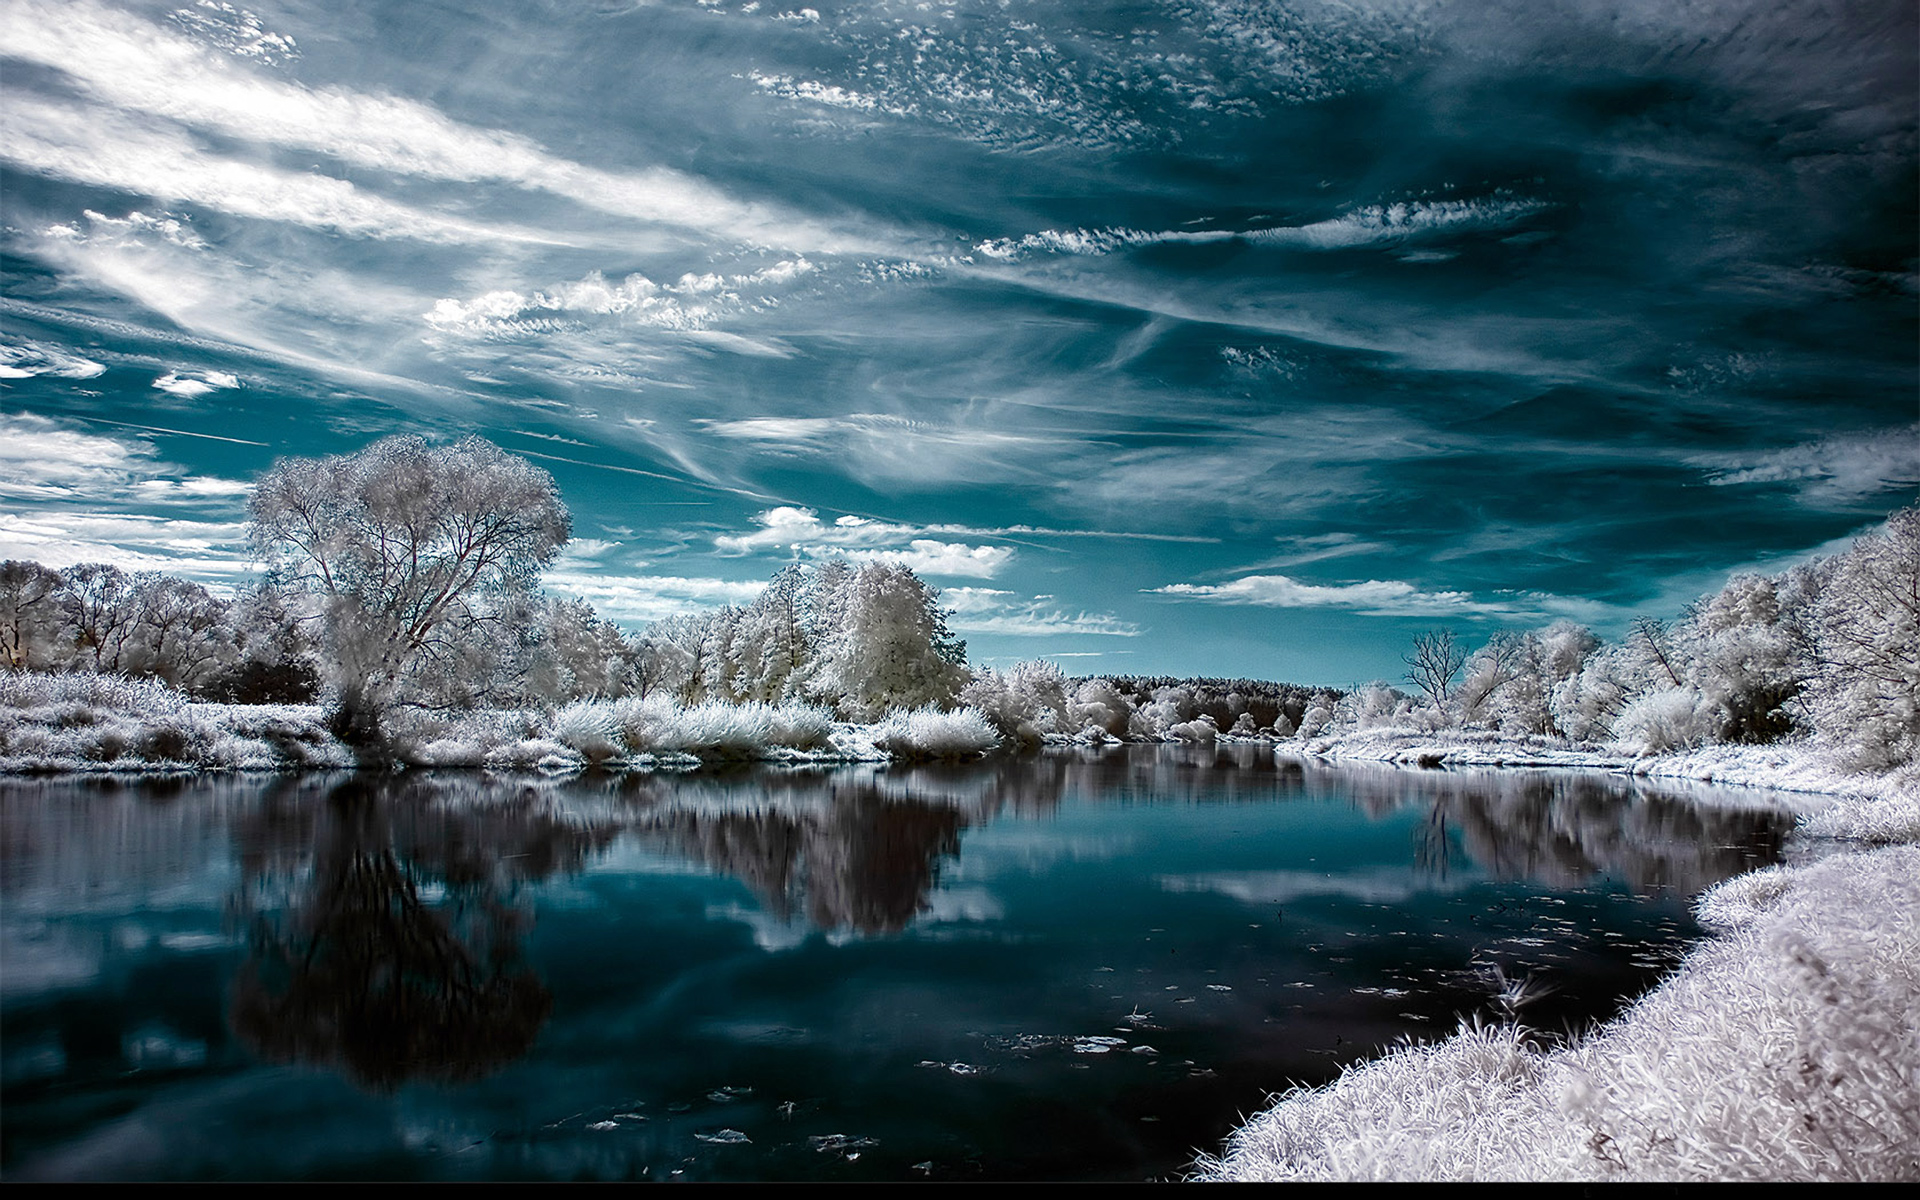 Artistic Earth Reflection Sky Water Winter 1920x1200